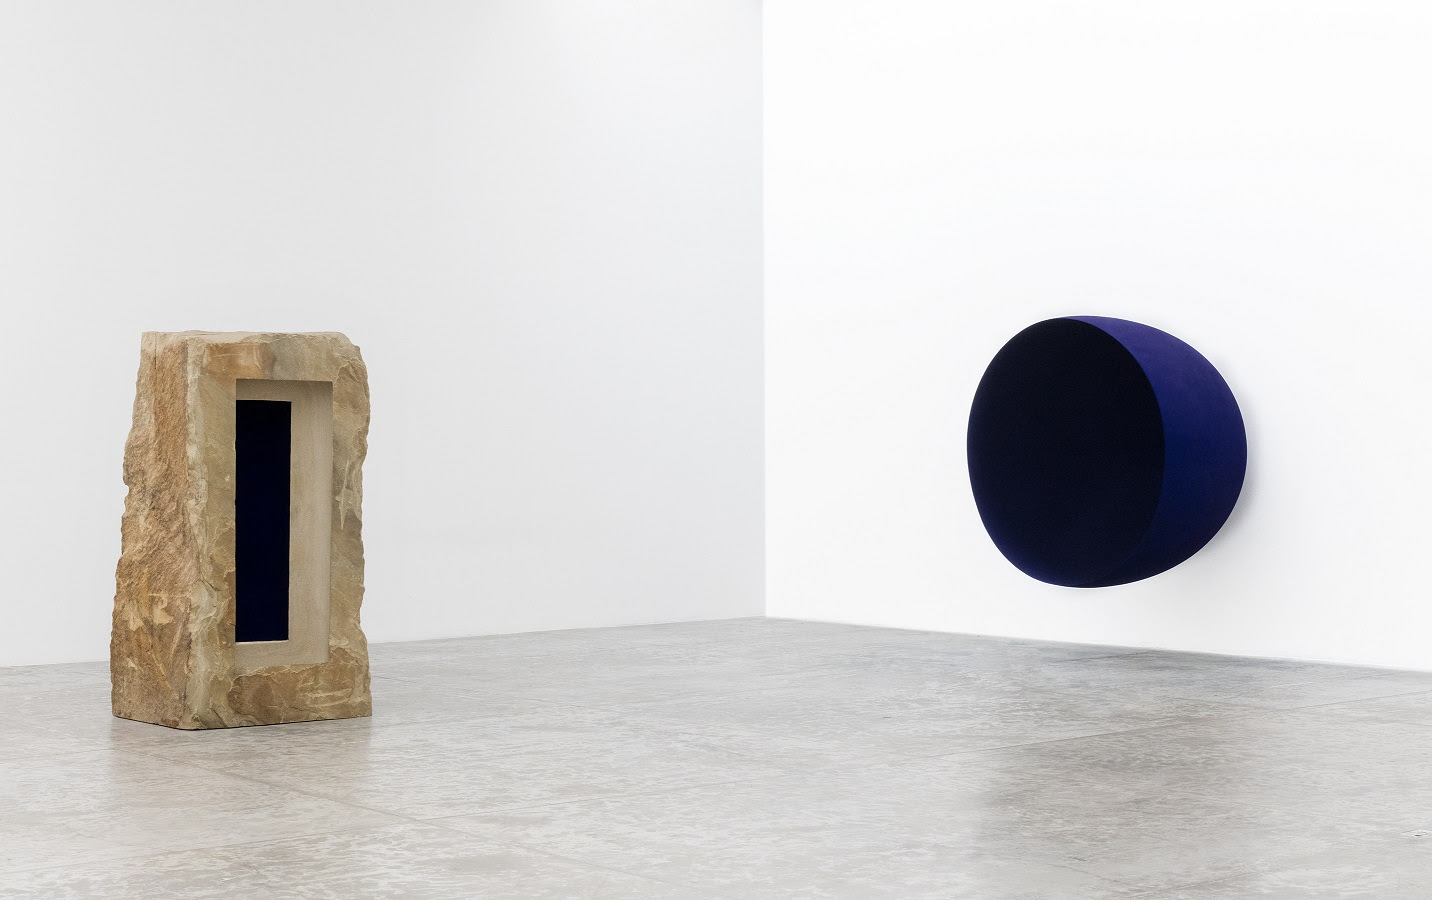 Anish Kapoor - Left: Untitled, 1992. Sandstone and pigment, 230x122x103 cm - Right: Void, 1989. Fibreglass and pigment, 200x200x152.5 cm Photograph: Michel Zabe ©Anish Kapoor. All rights reserved DACS, 2021